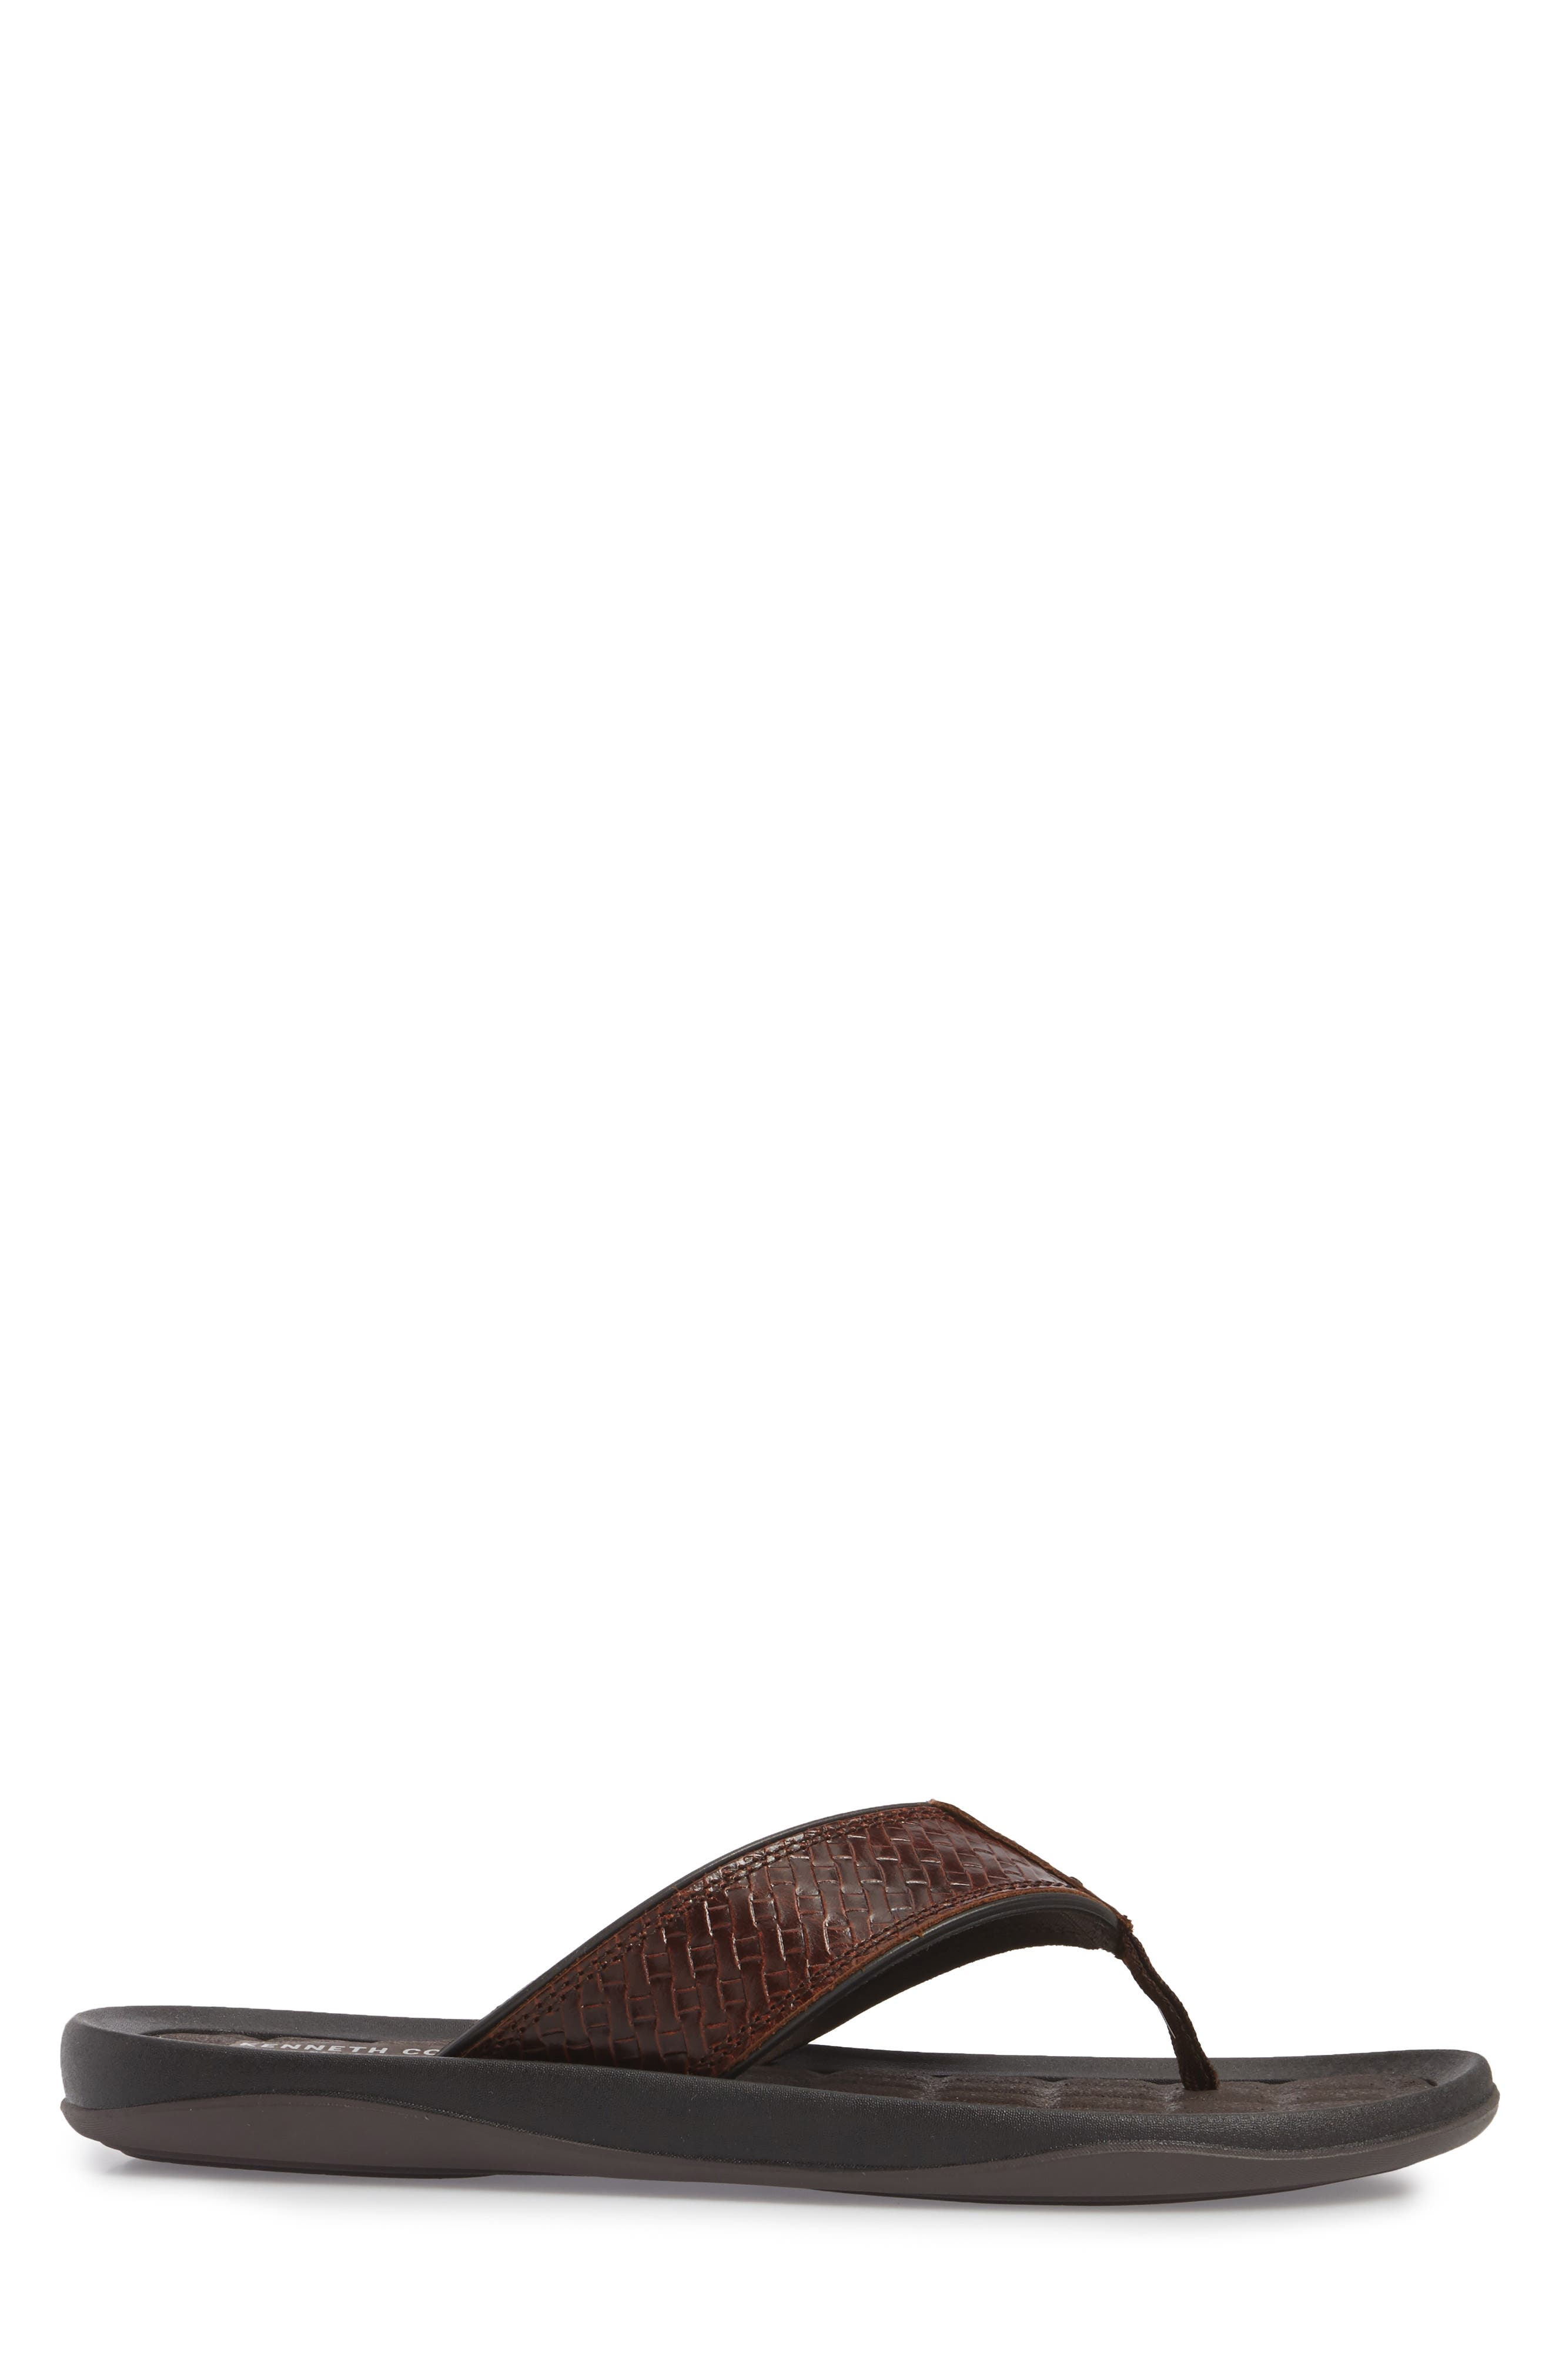 Izzo Embossed Flip Flop,                             Alternate thumbnail 3, color,                             Brown Leather